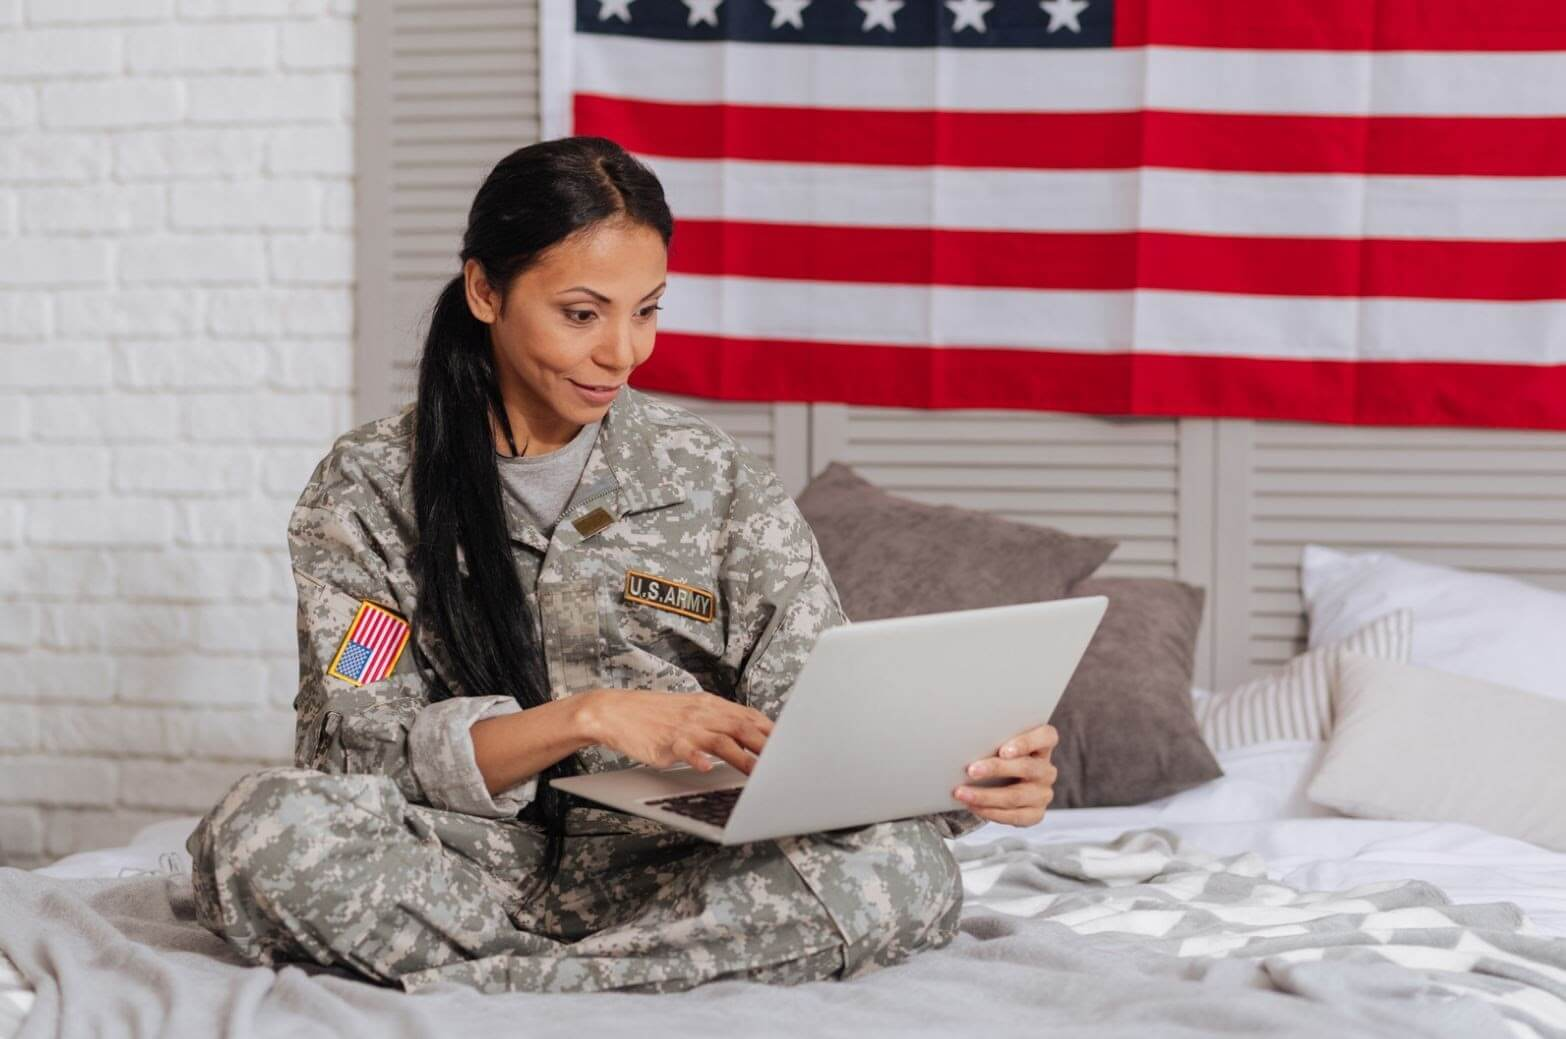 A soldier sitting on a bed using a computer